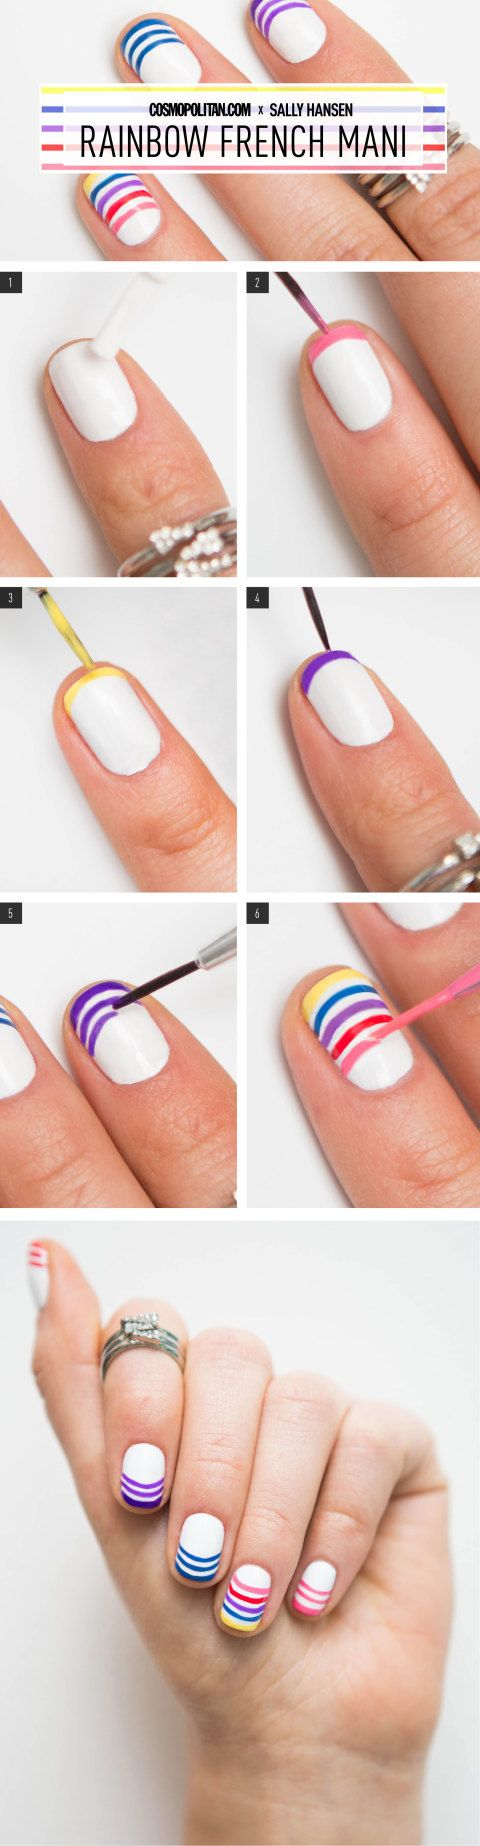 28 best Alternative French Manicure images on Pinterest   Nail ...